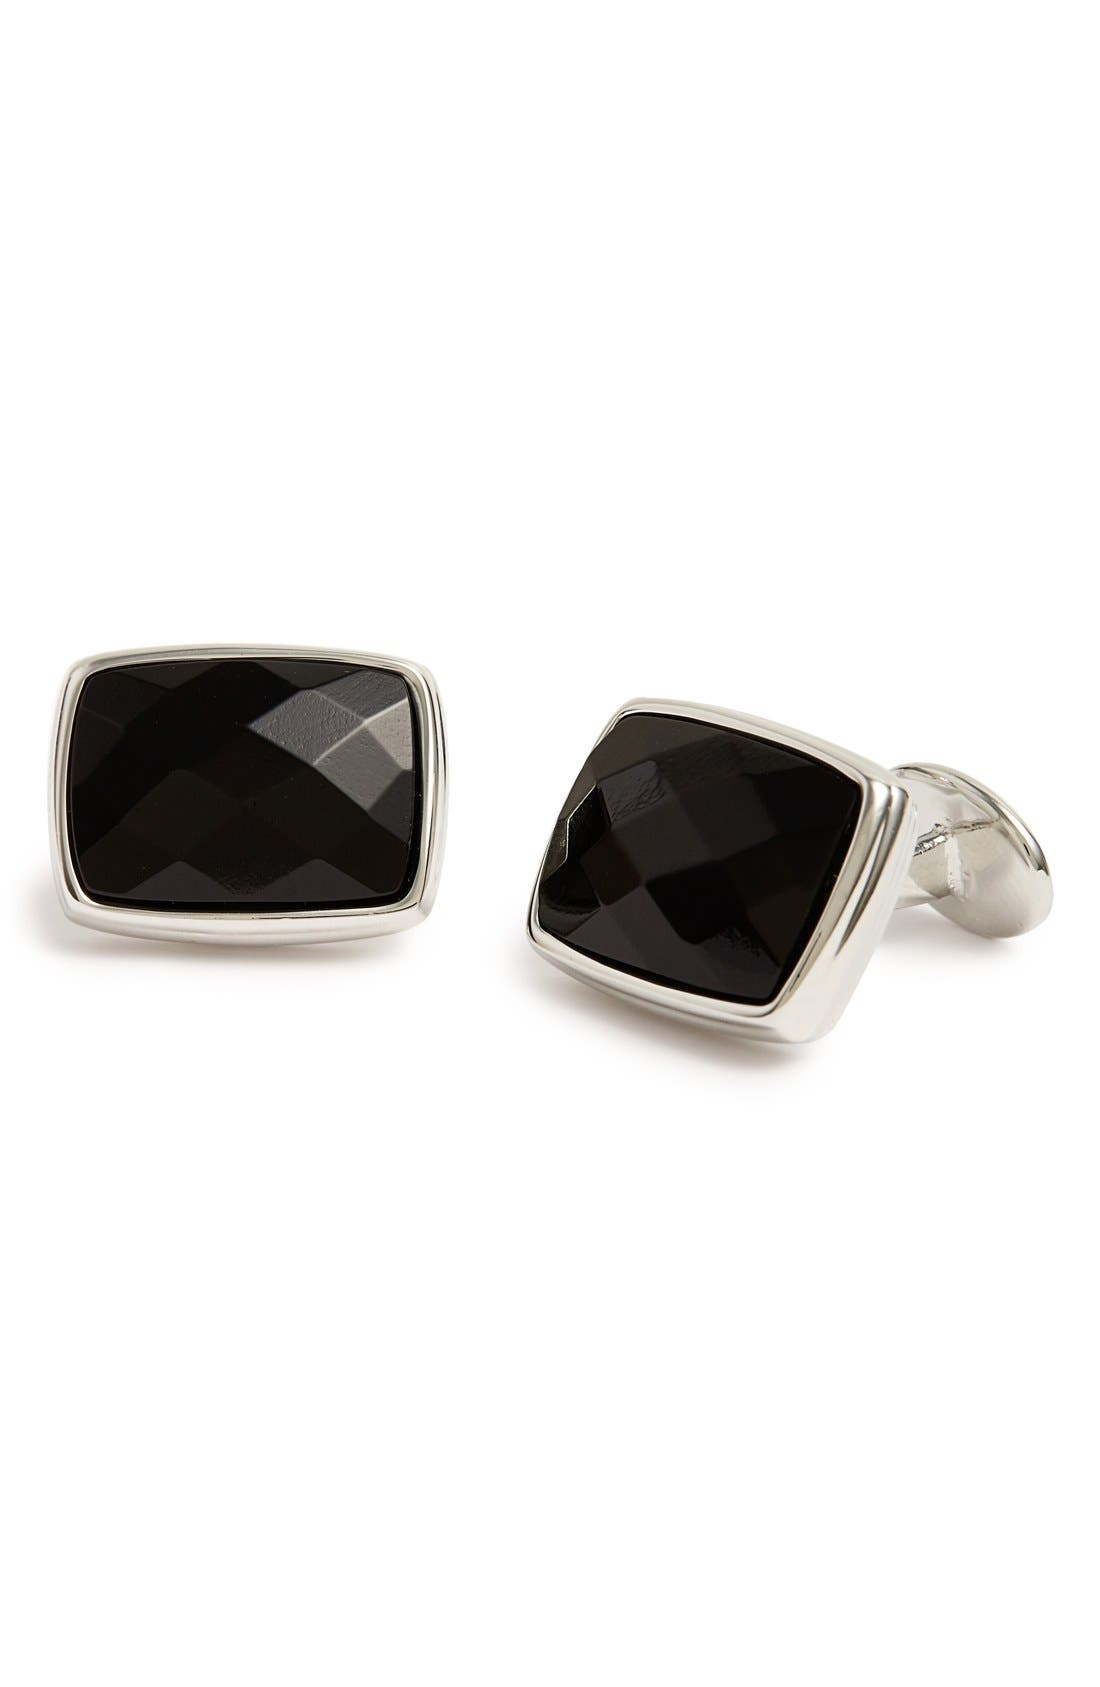 Onyx Cuff Links,                         Main,                         color, 004